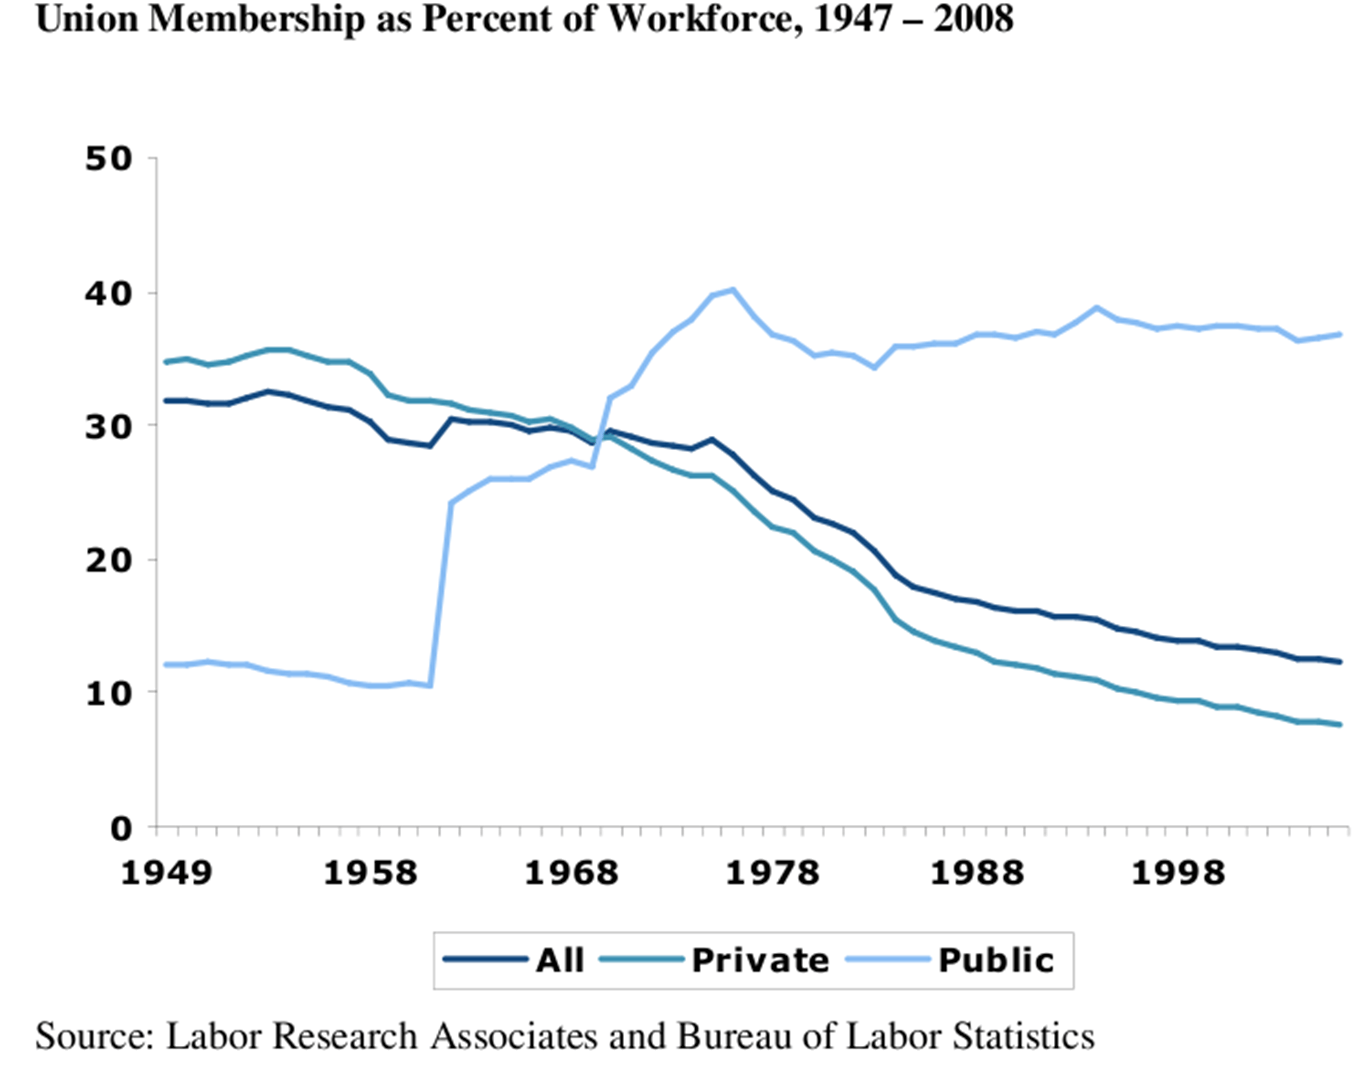 "Because of their new focus and vitality, public sector union membership surged—just as private sector union membership began a steady decline.  ""From the early 1960s to today, public-sector union density rose from less than 12% to around 40%; meanwhile, from the mid-1950s to today, private-sector union density declined from more than 33% to less than 10%.  Also, by the year 2000, about 40% of all union members were public workers."" (Joseph E. Slater, ""Public-Sector Unionism,"" in Encyclopedia of U.S. Labor and Working-Class History, ed. Eric Arnesen (New York: Routledge, 2007), 1143.)"